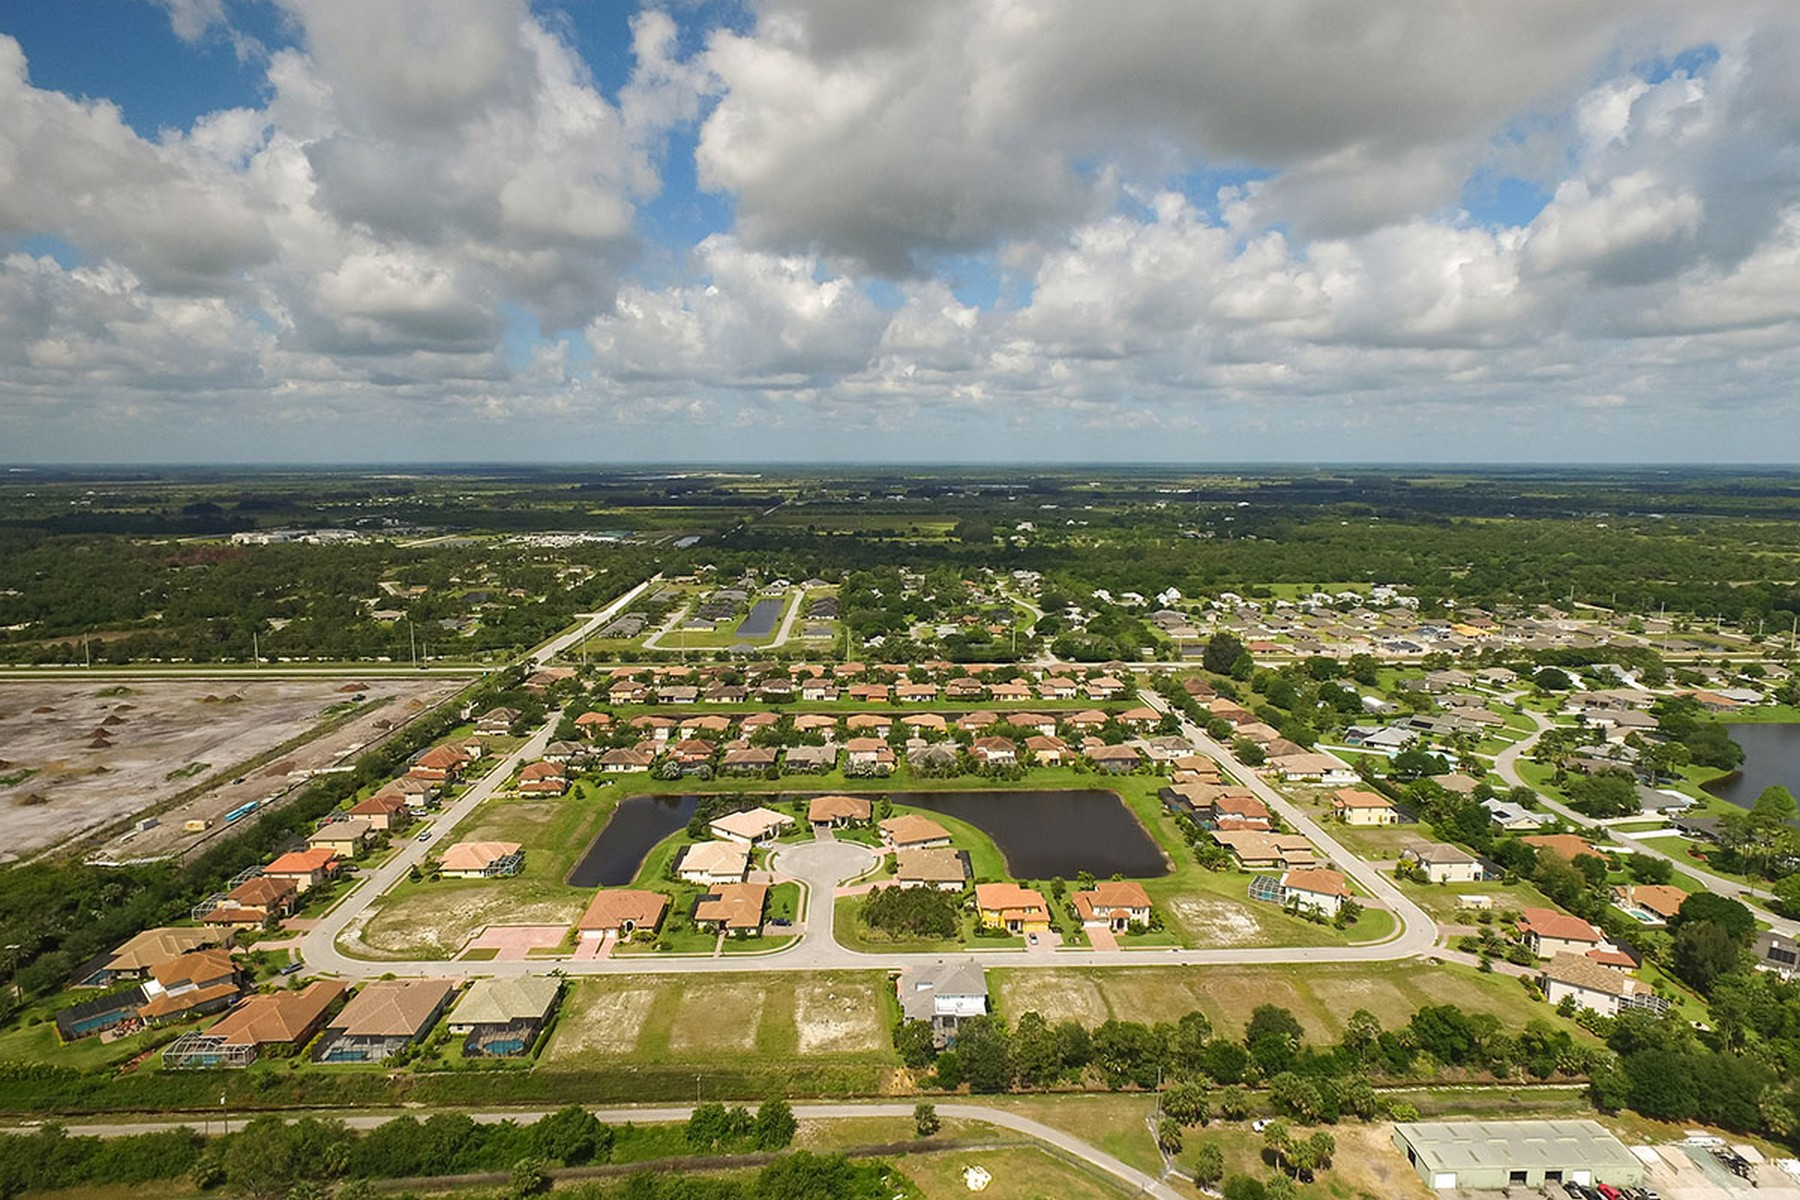 Terreno por un Venta en 15 Home sites in Eagle Trace 6230 55th Avenue Vero Beach, Florida, 32967 Estados Unidos